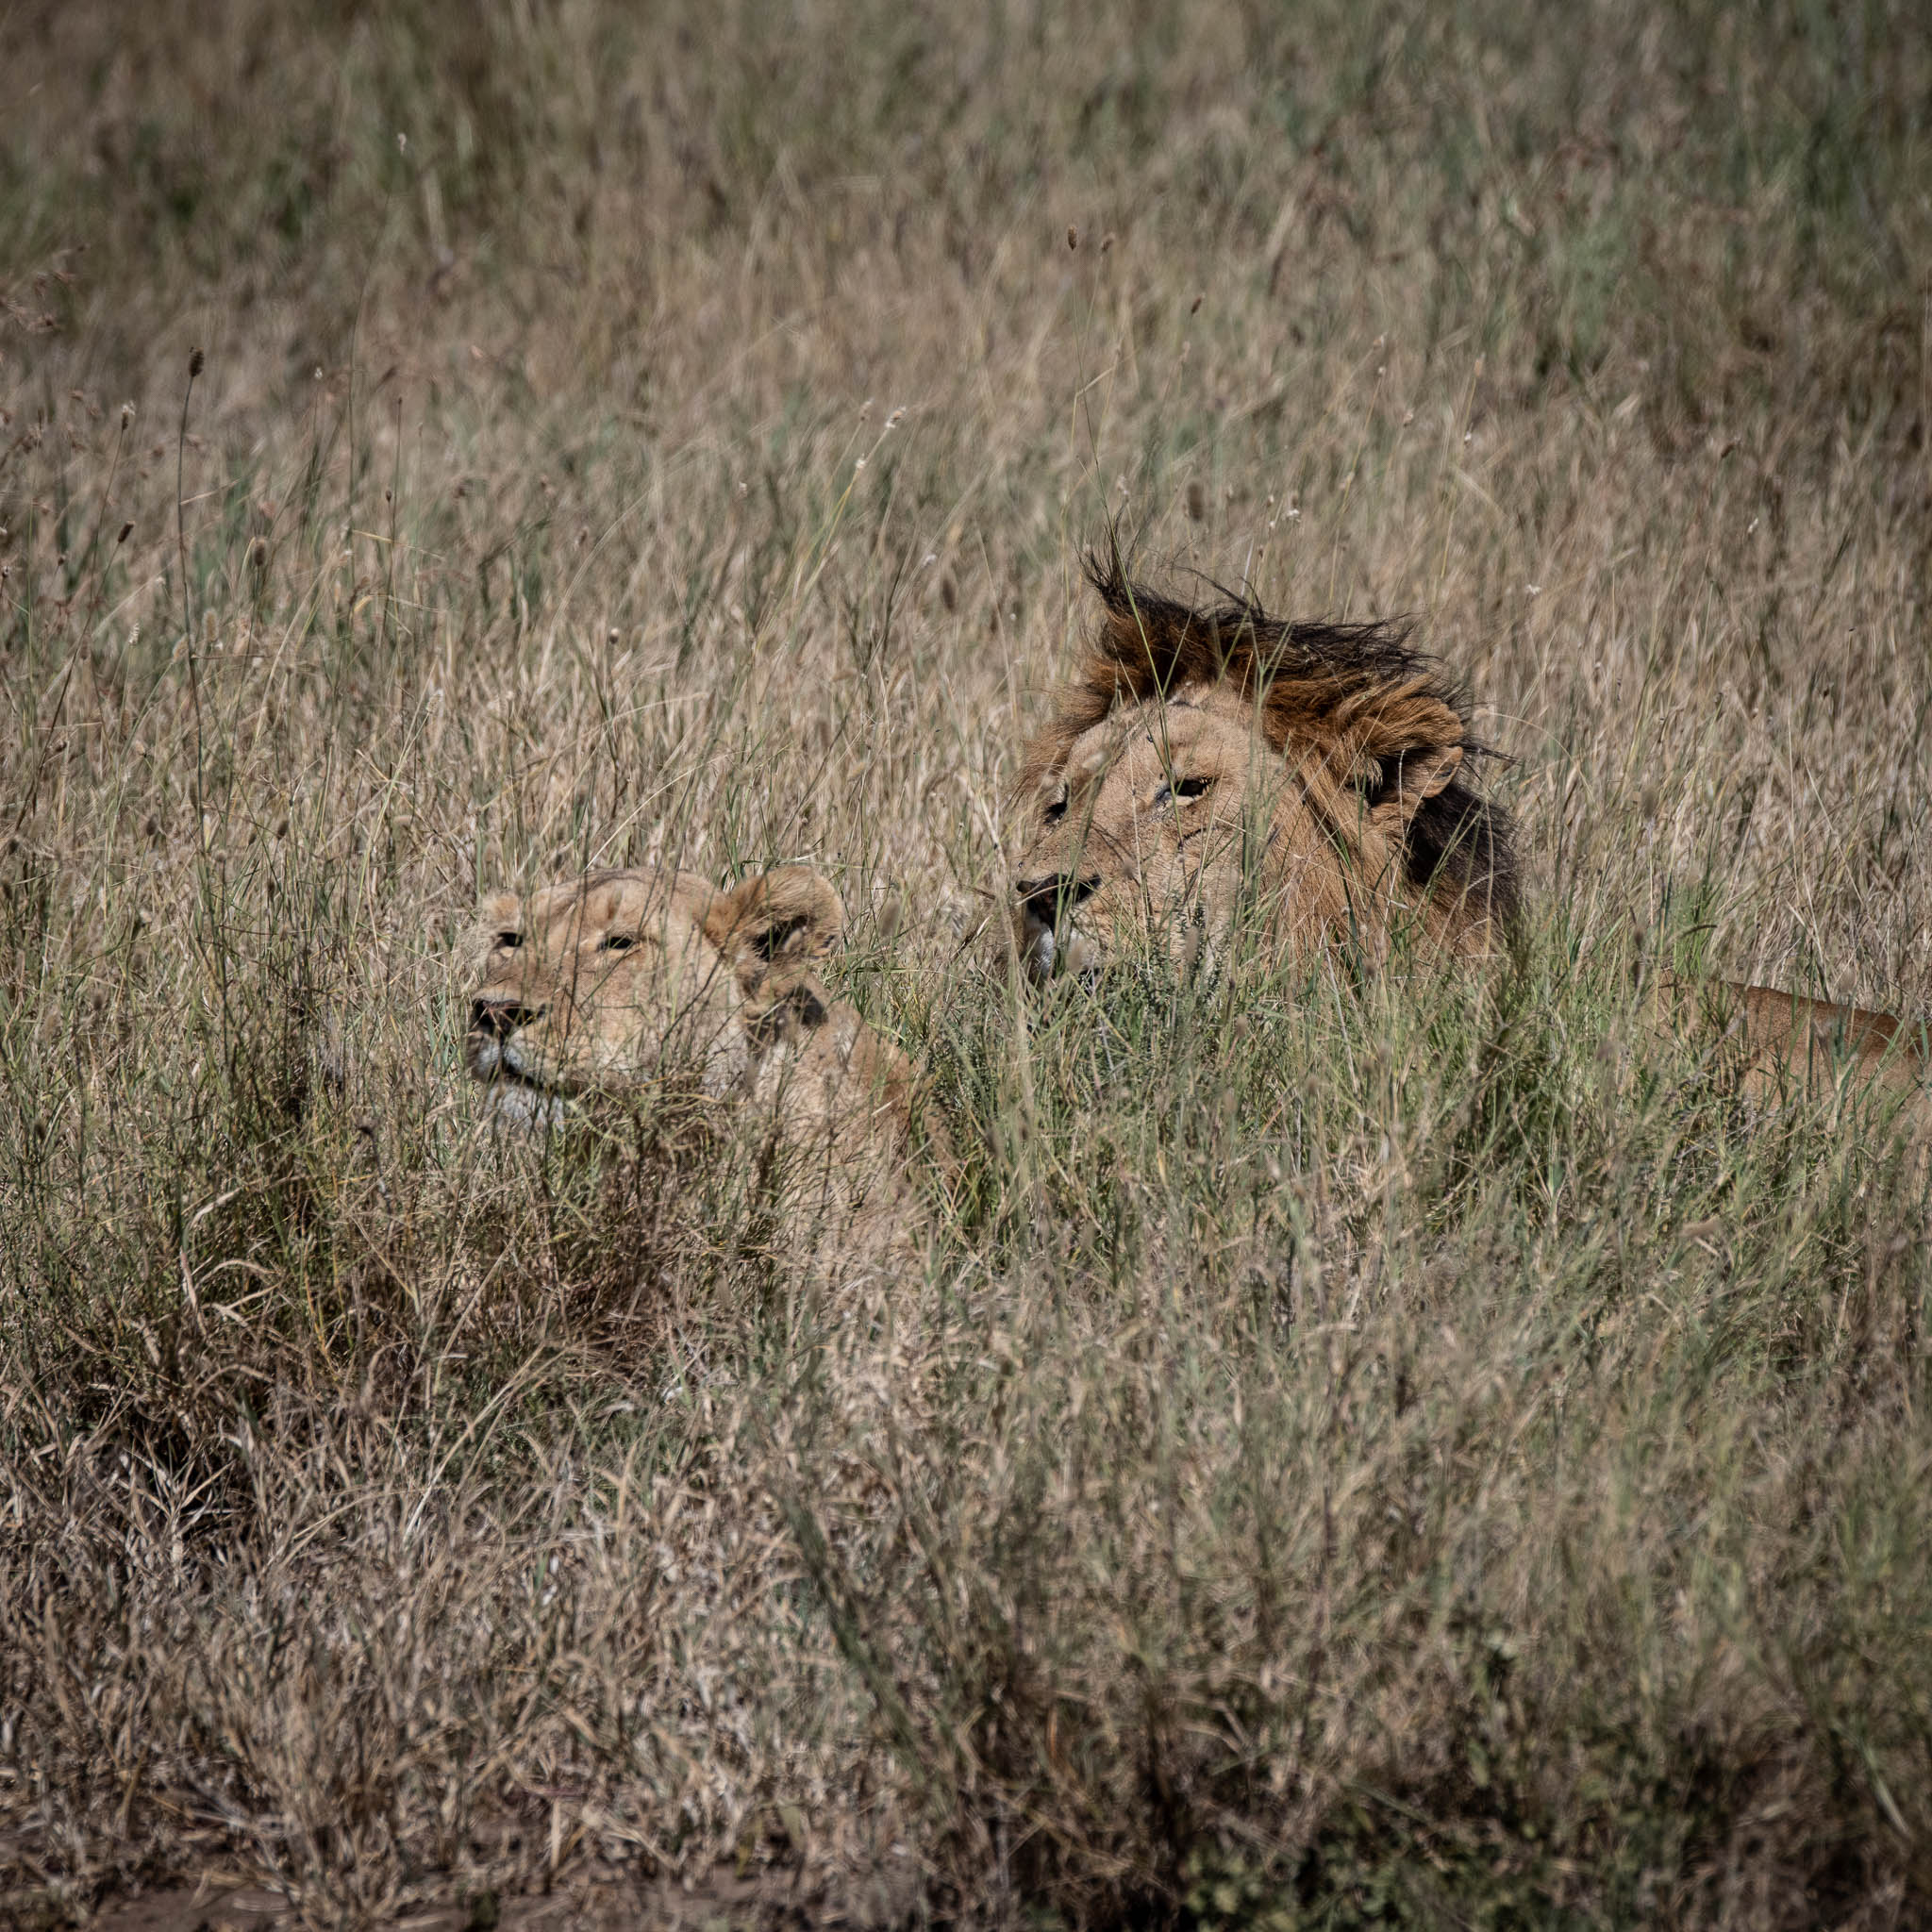 Mating Time in Serengeti